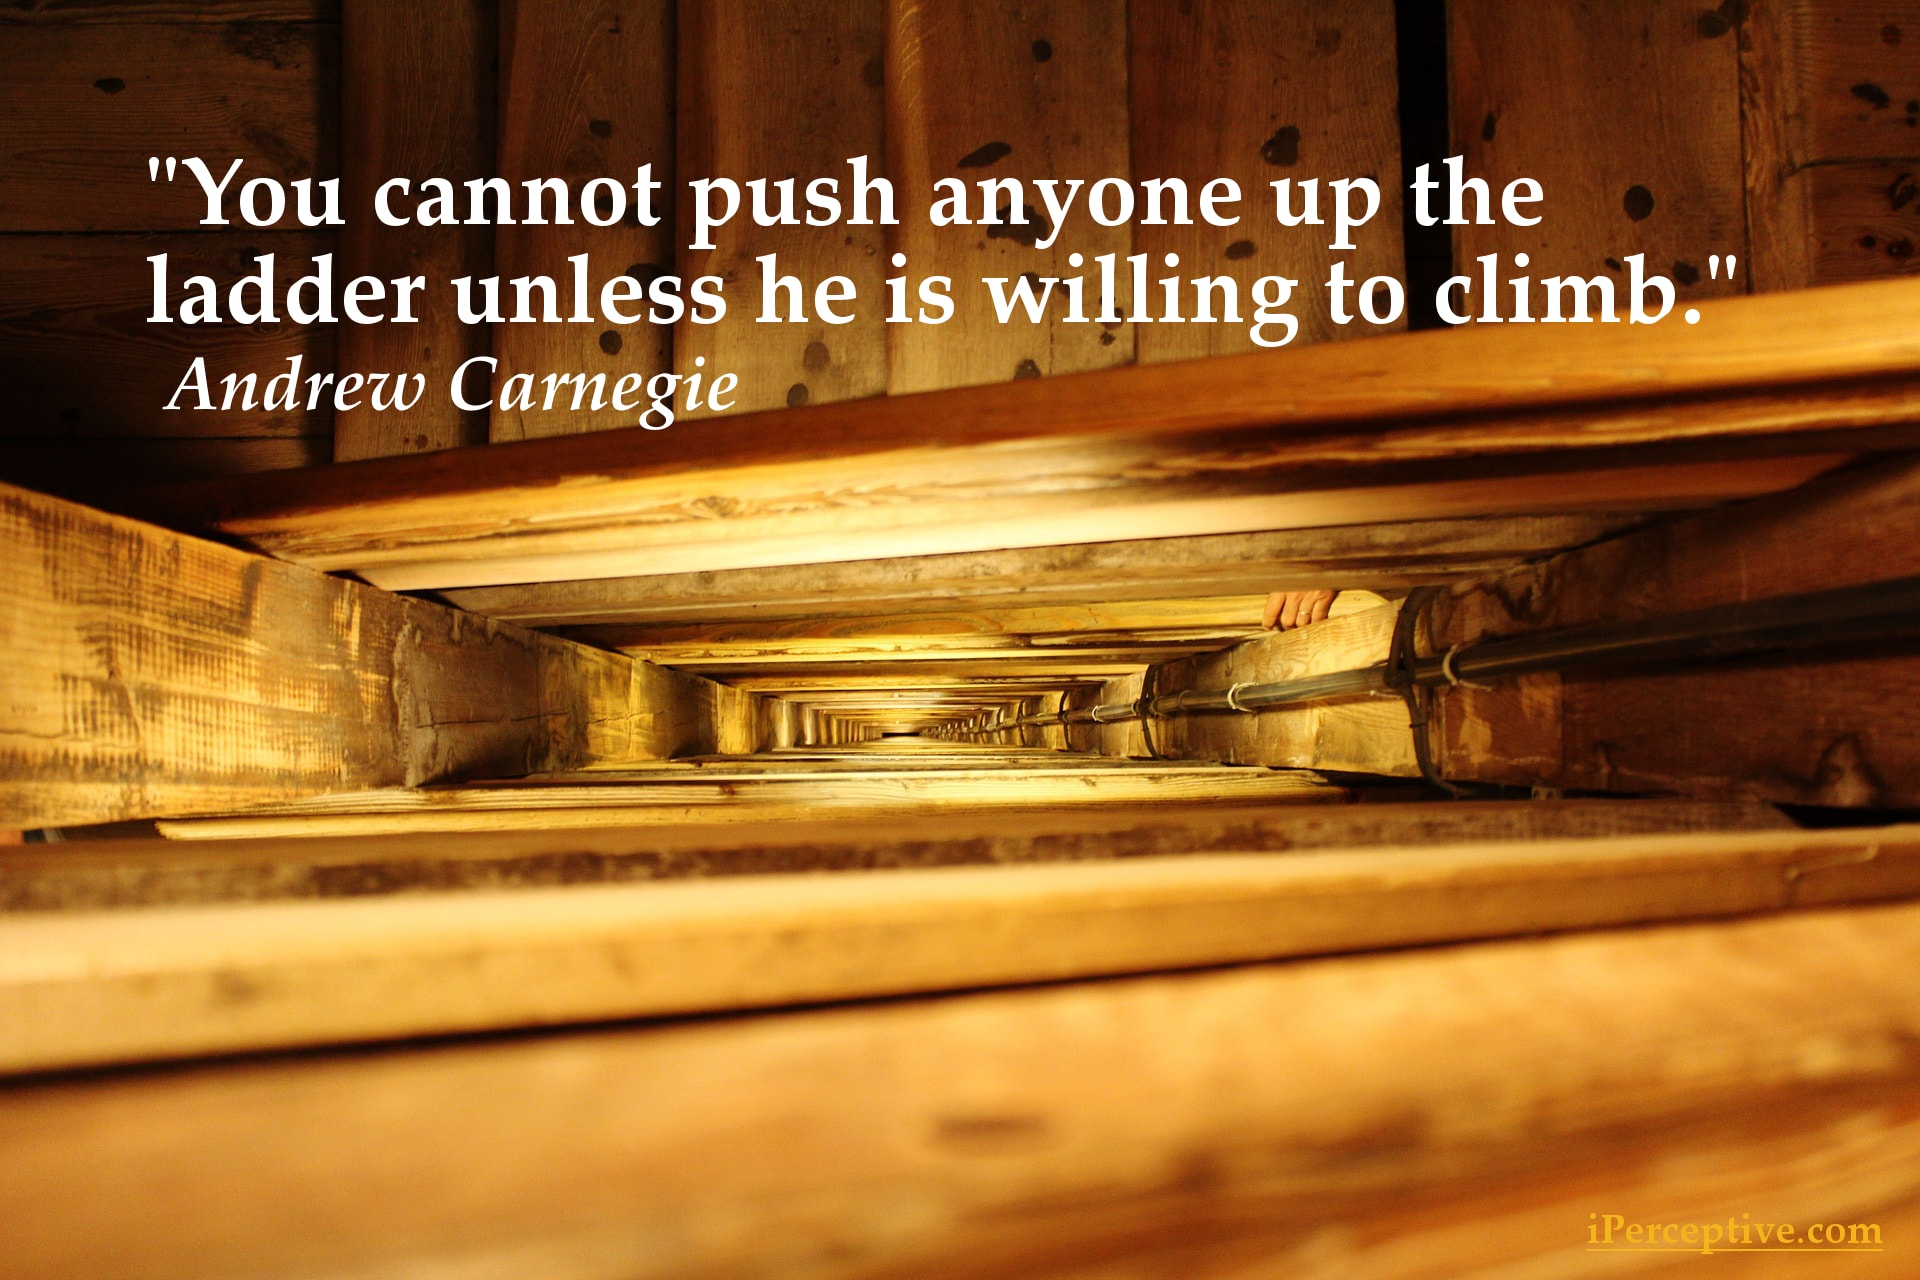 Andrew Carnegie Quote - You cannot push anyone up the ladder...